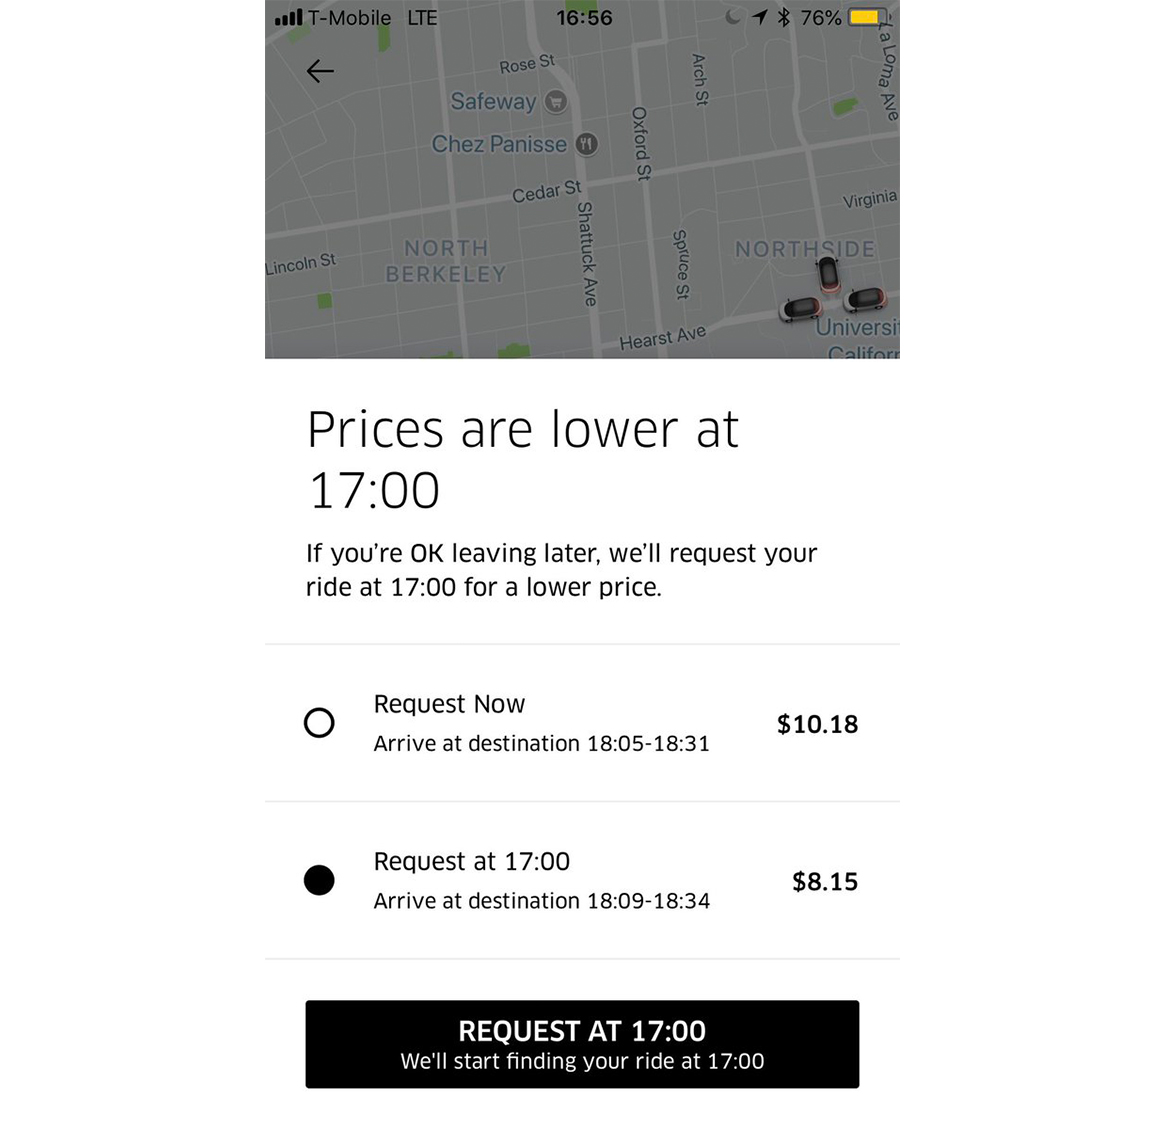 Uber's request a later ride feature